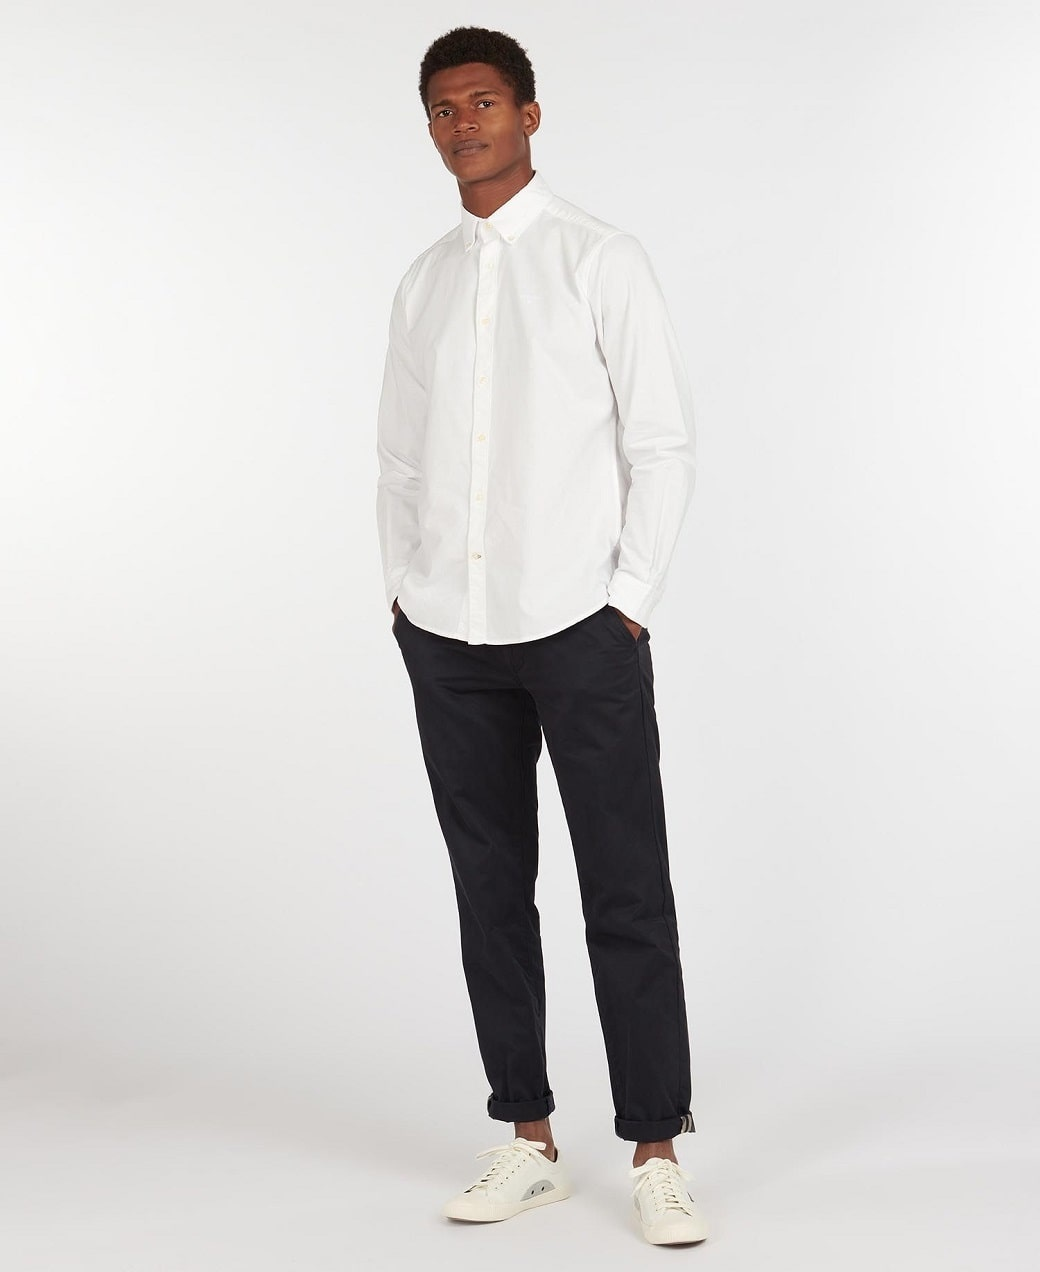 Barbour Oxford 13 Tailored Shirt White-3